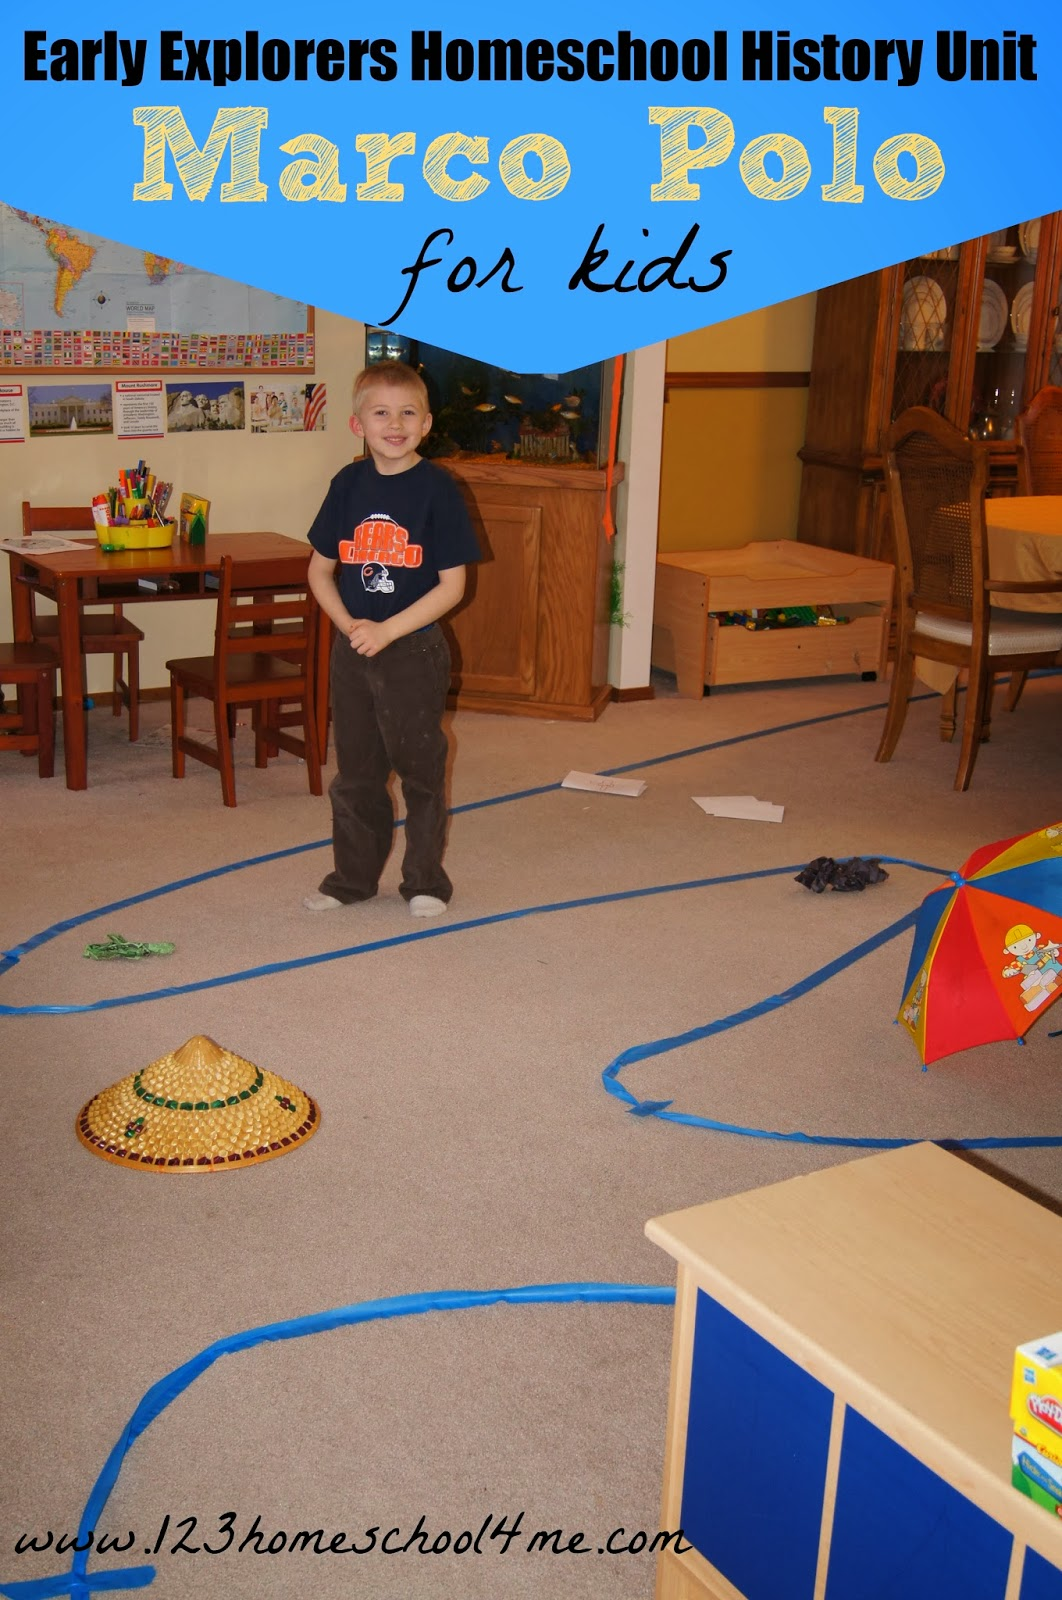 Early Explorers Unit - Tons of fun, hands on history activities to make learning fun! These explorer activities are perfect for kids from kindergarten to first grade, 2nd grade, 5th grade and more to make learning fun in social studies. Includes: Marco Polo, Henry the Navigator and more